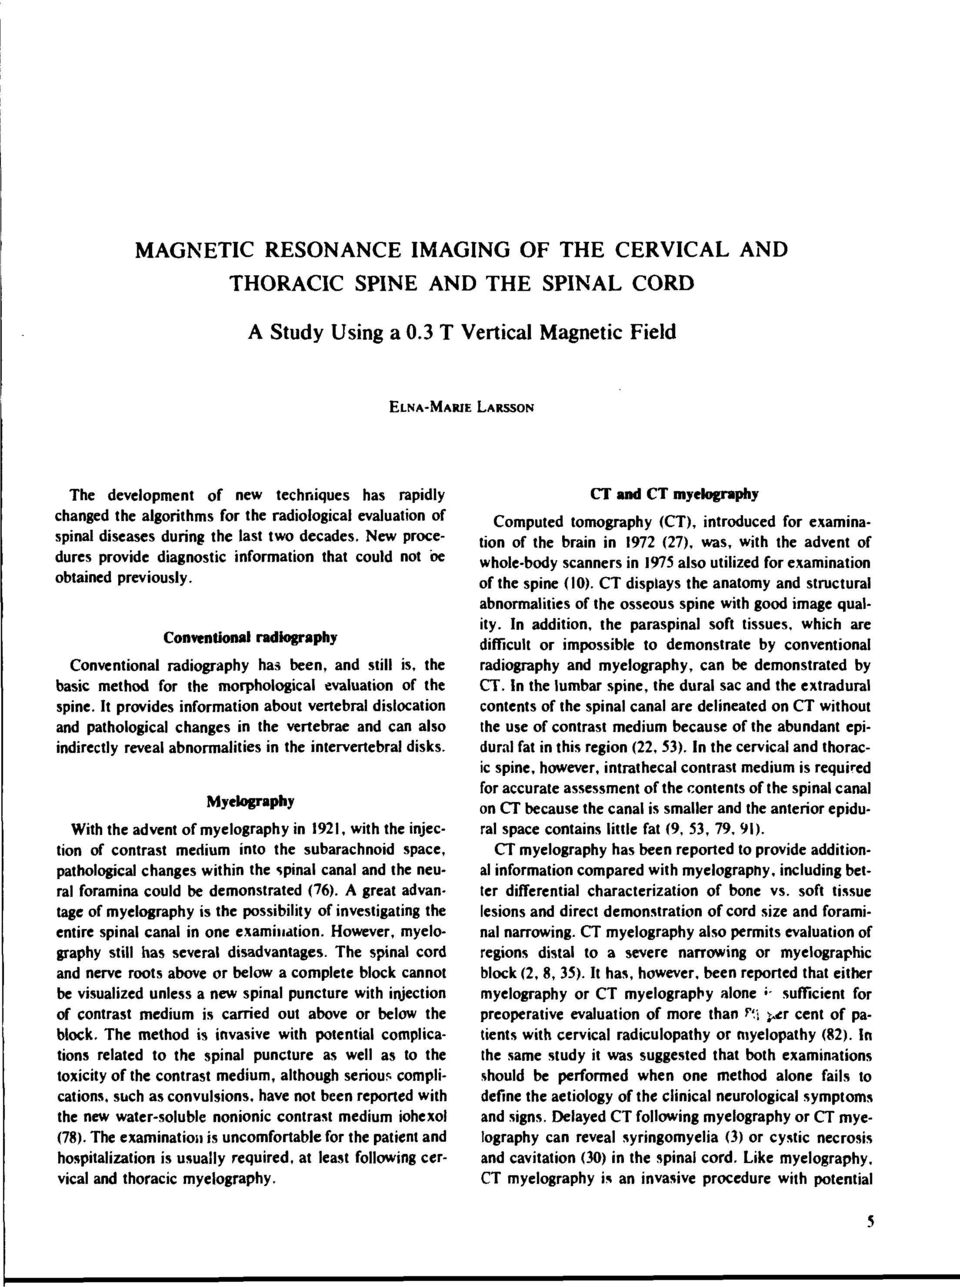 Magnetic Resonance Imaging Of The Cervical And Thoracic Spine And